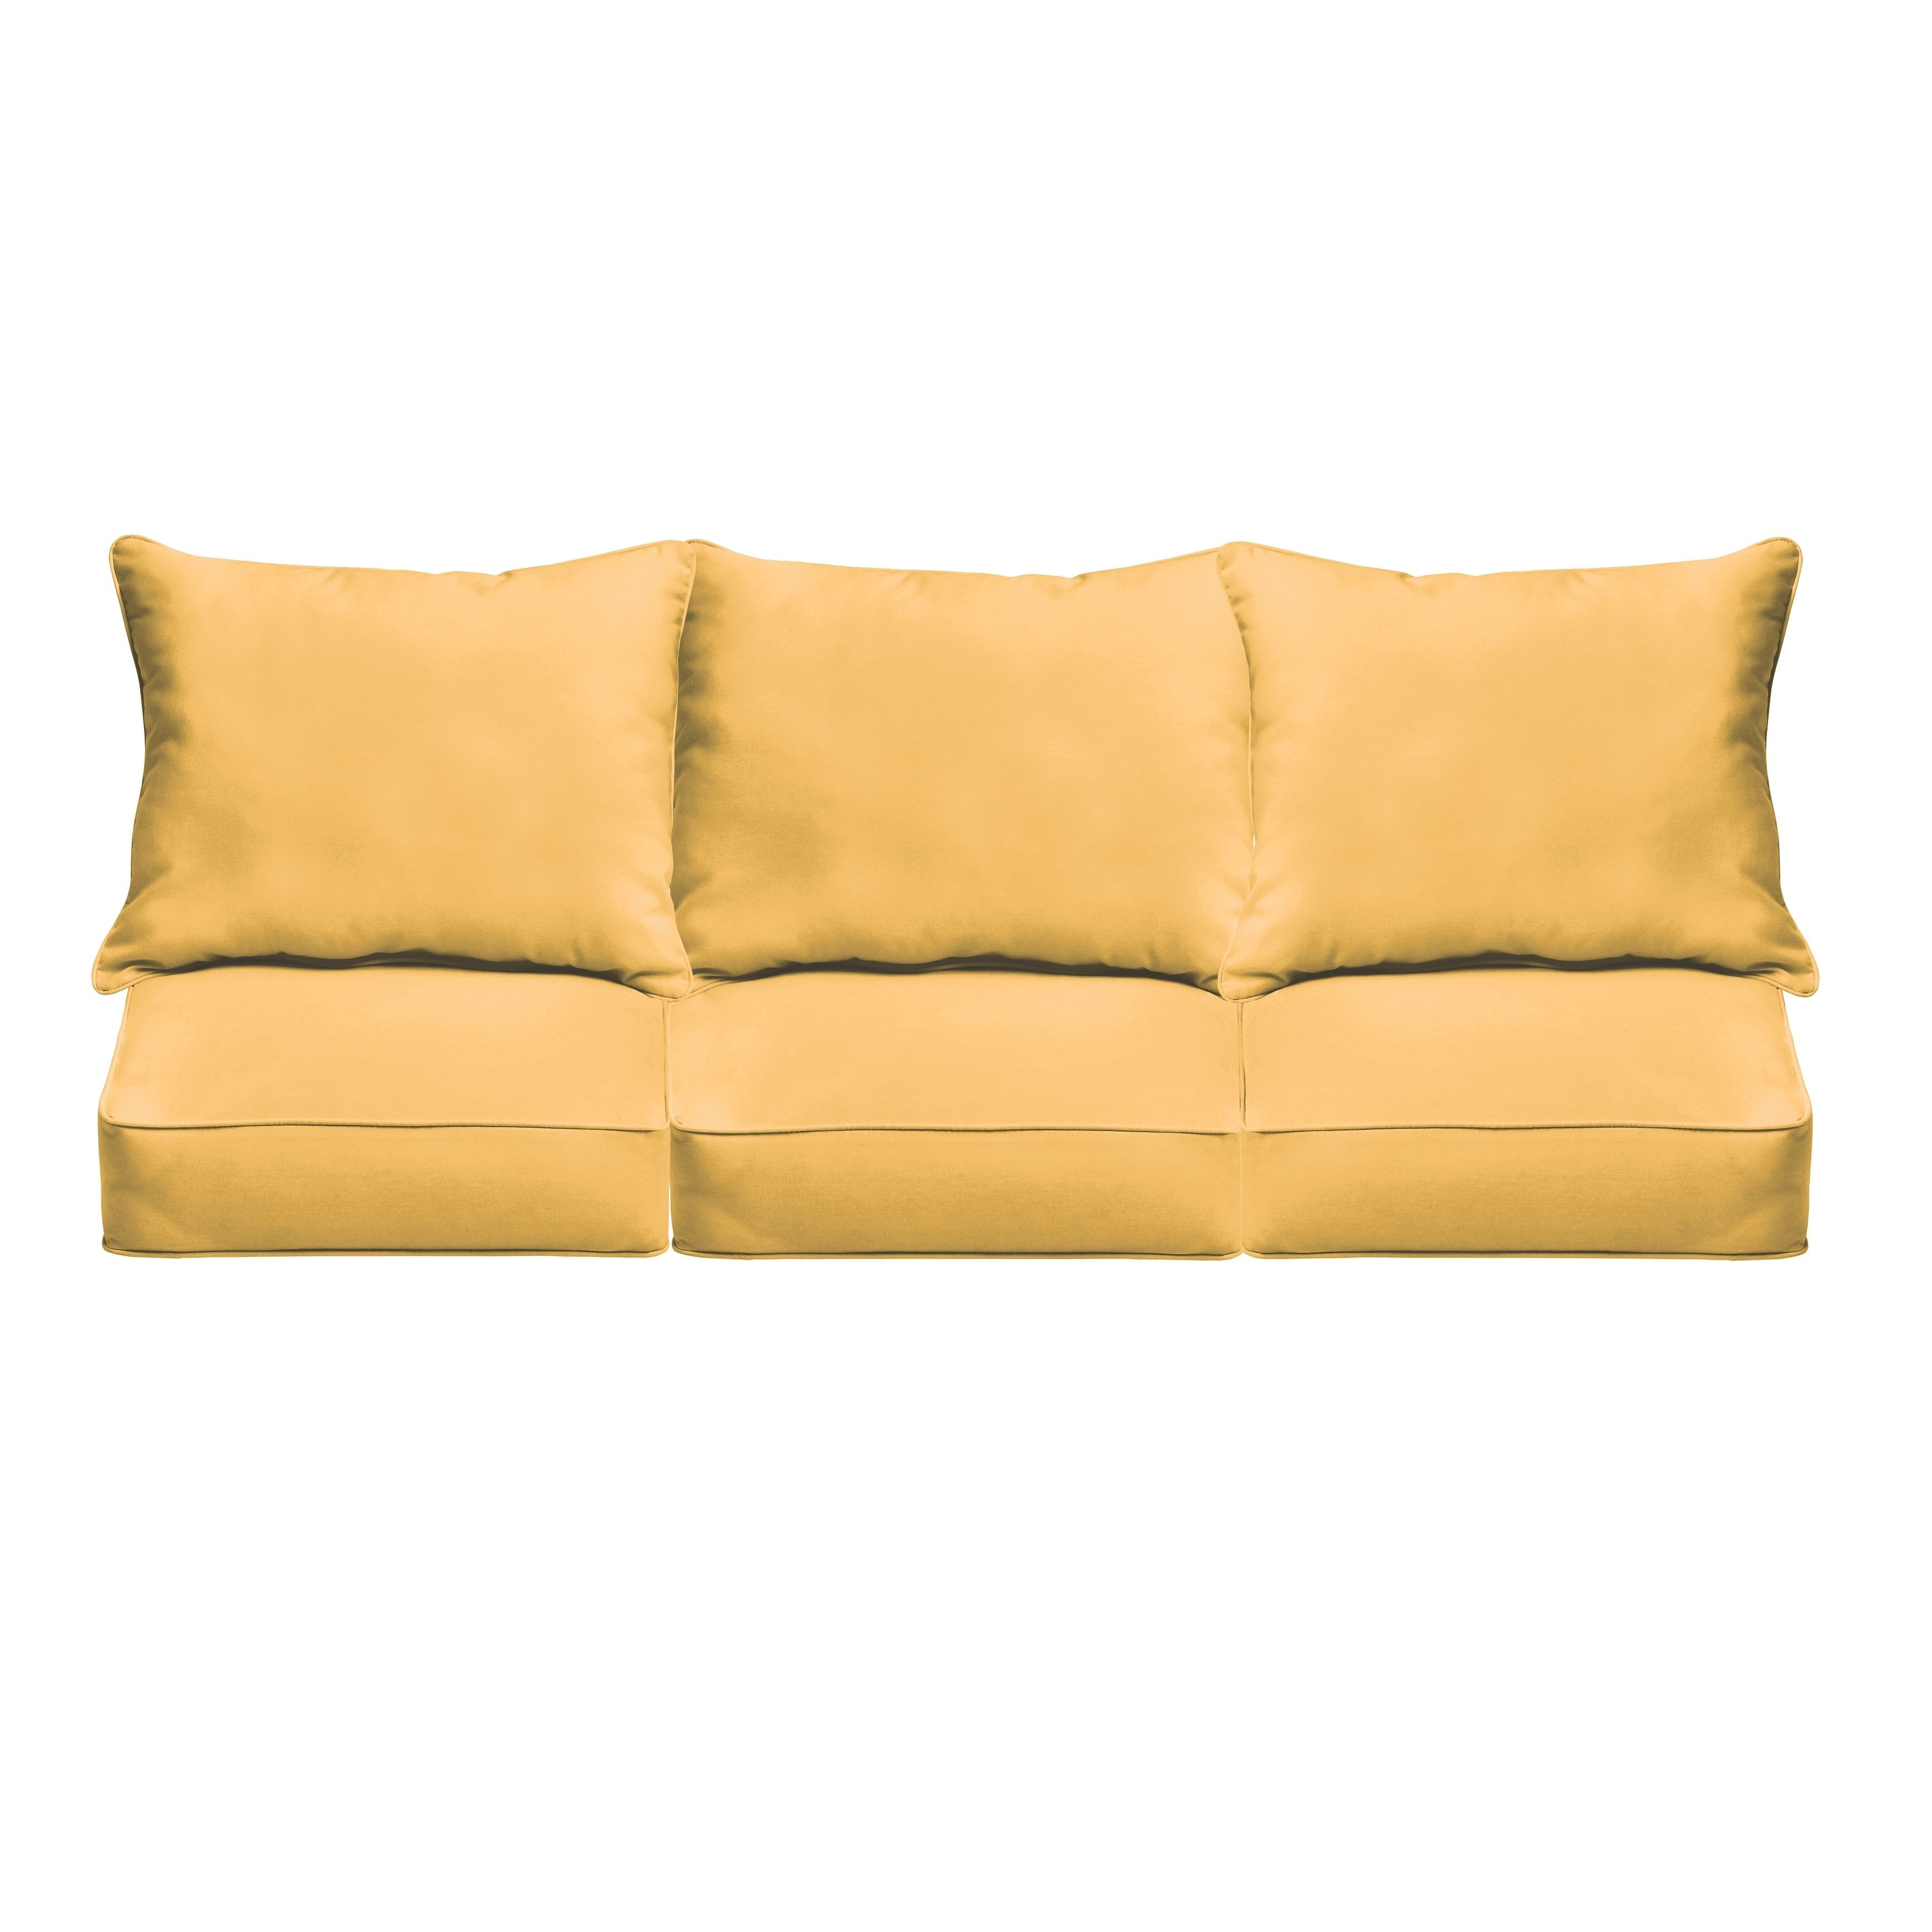 Sloane butter yellow indoor outdoor corded sofa cushion set fabric